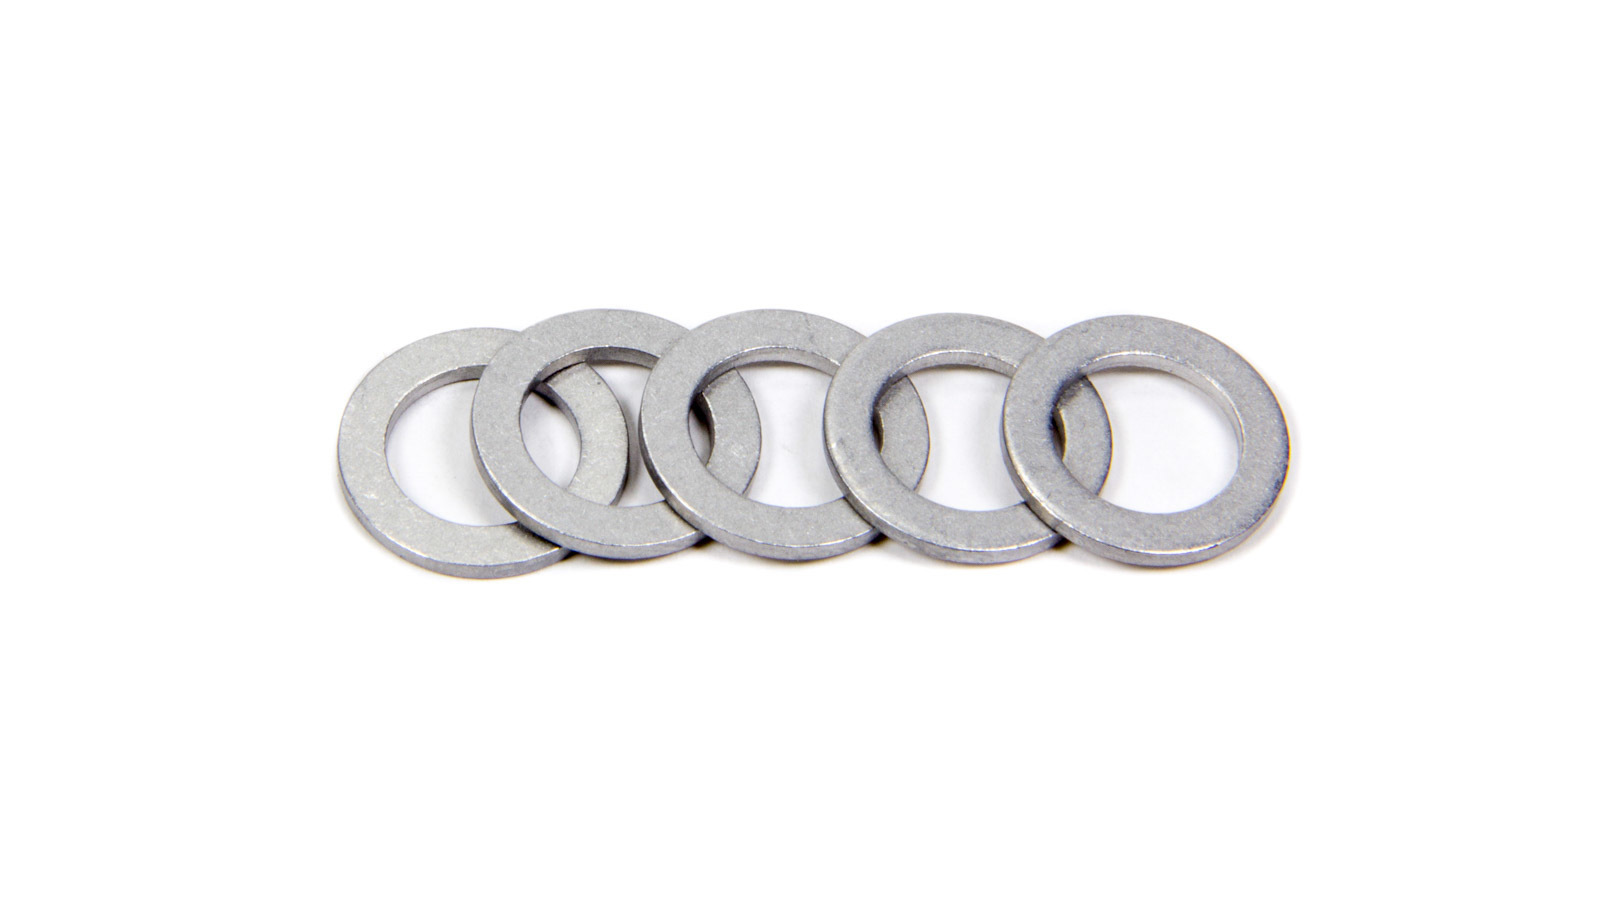 Aeroquip FCM3642 Crush Washer, 3 AN, Aluminum, Set of 5